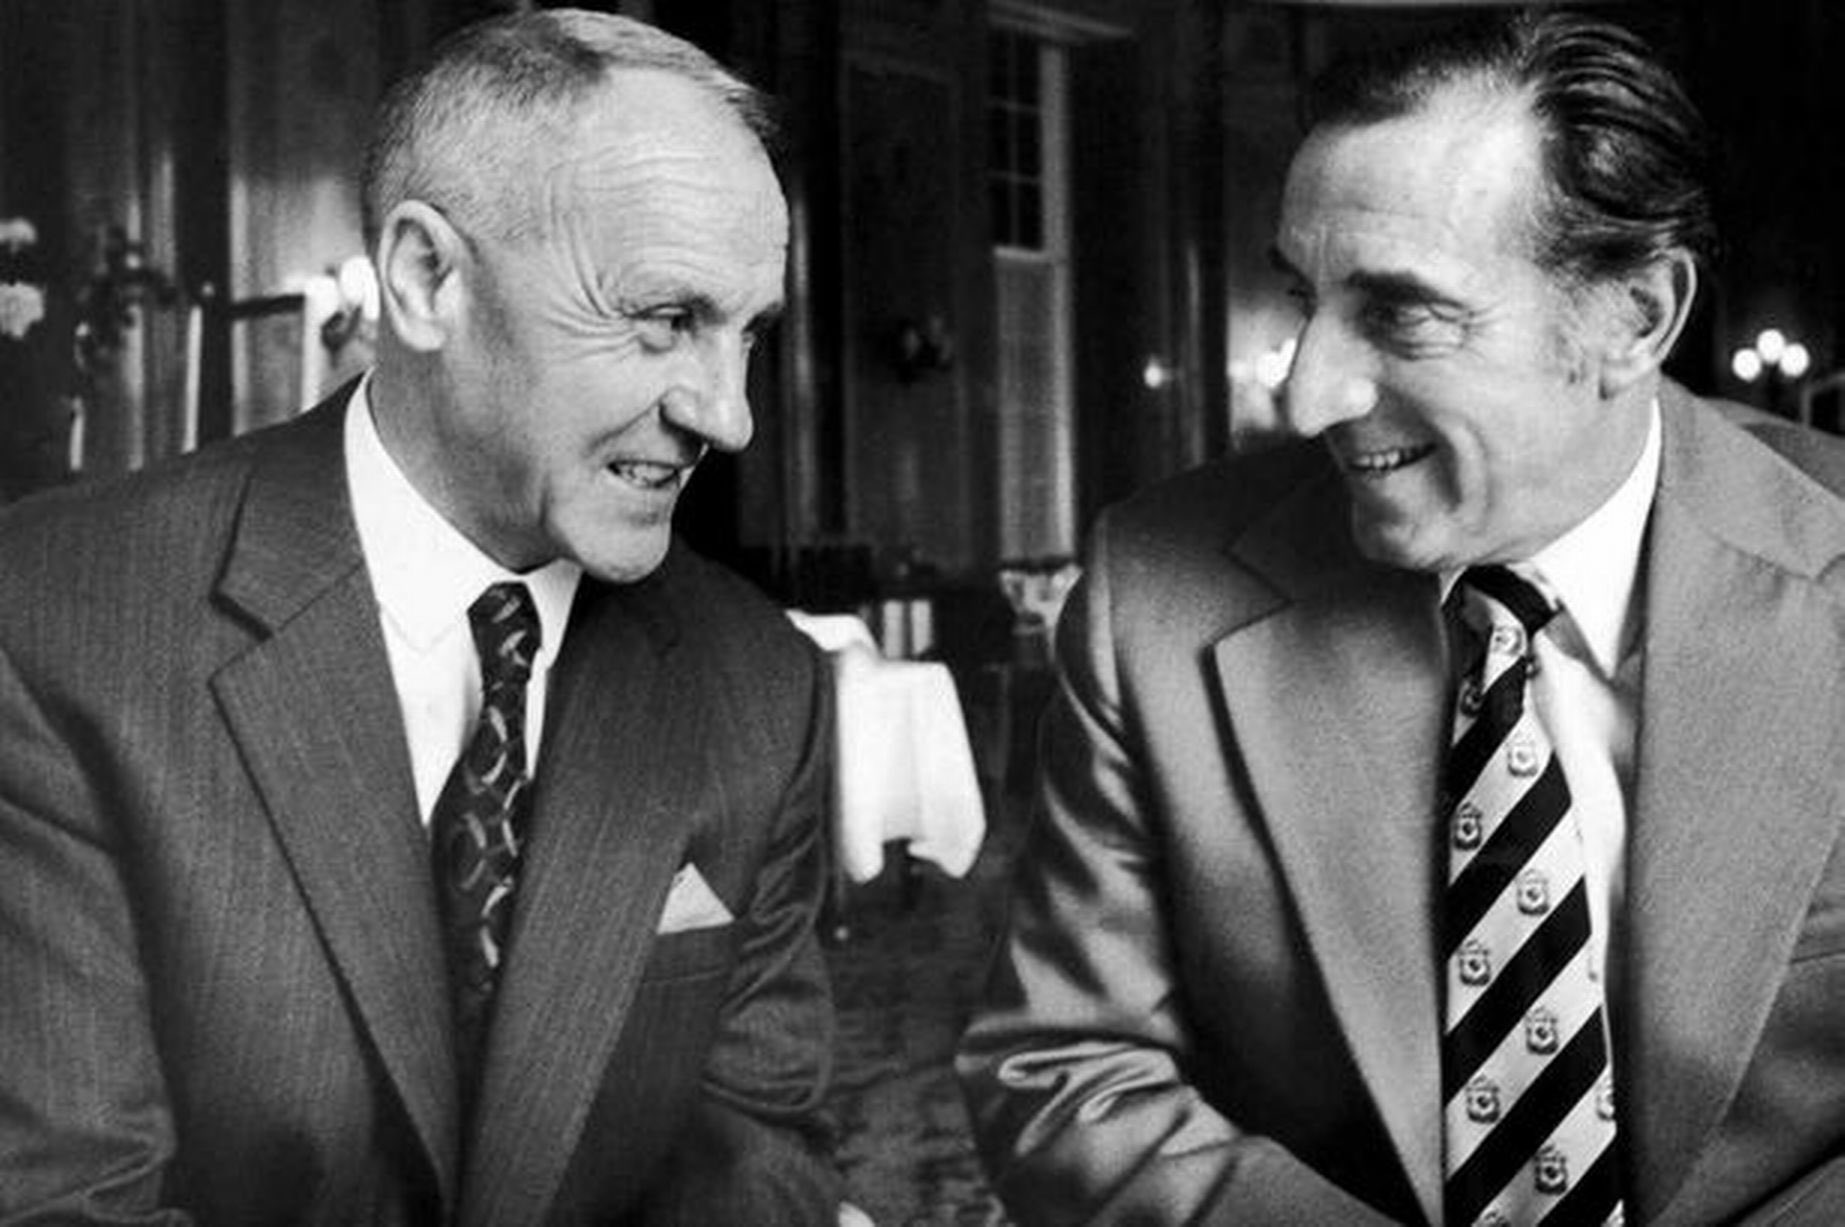 Bill Shankly of Liverpool and Harry Catterick of Everton https://t.co/up5Y7VZtWk